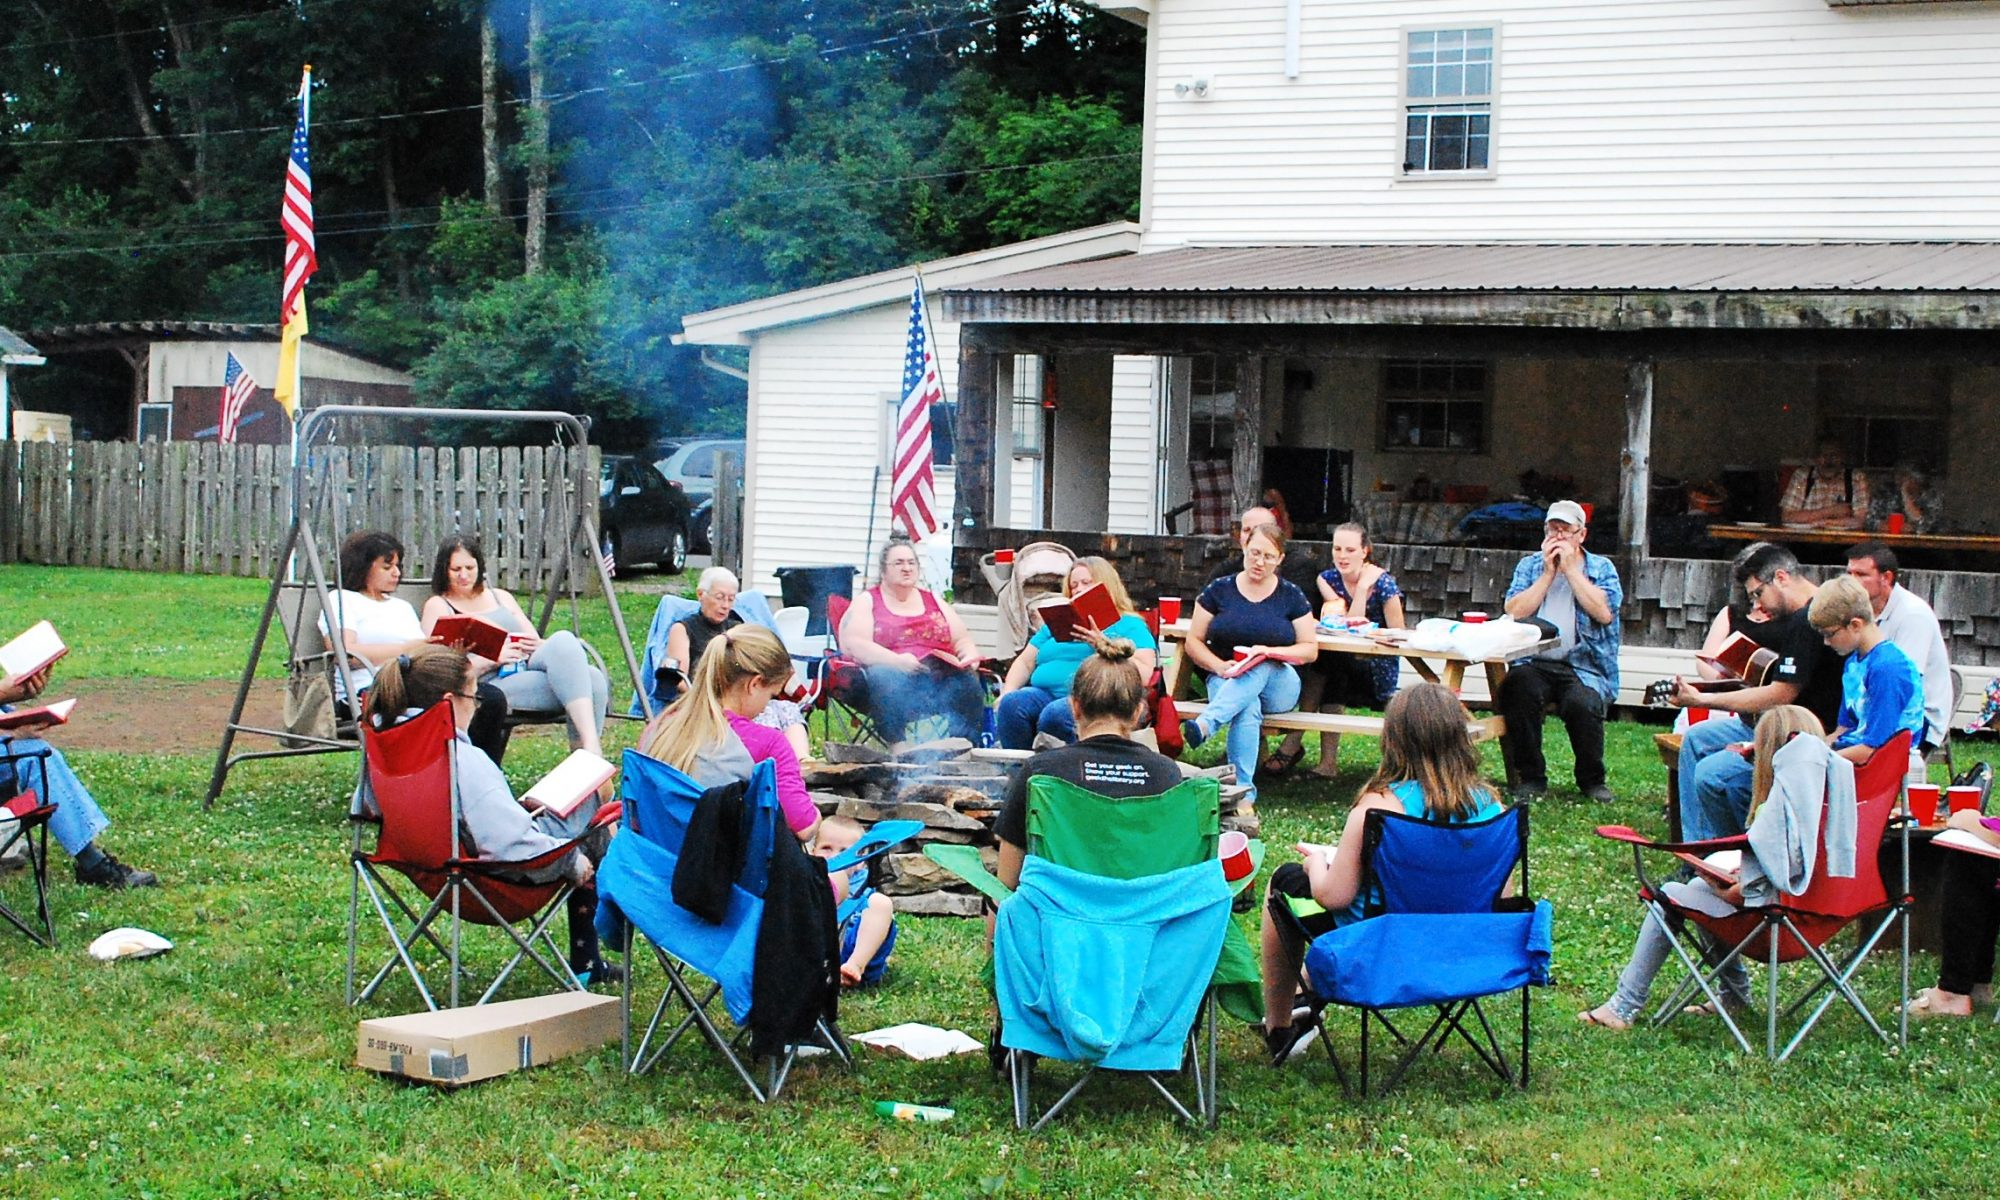 cookout event